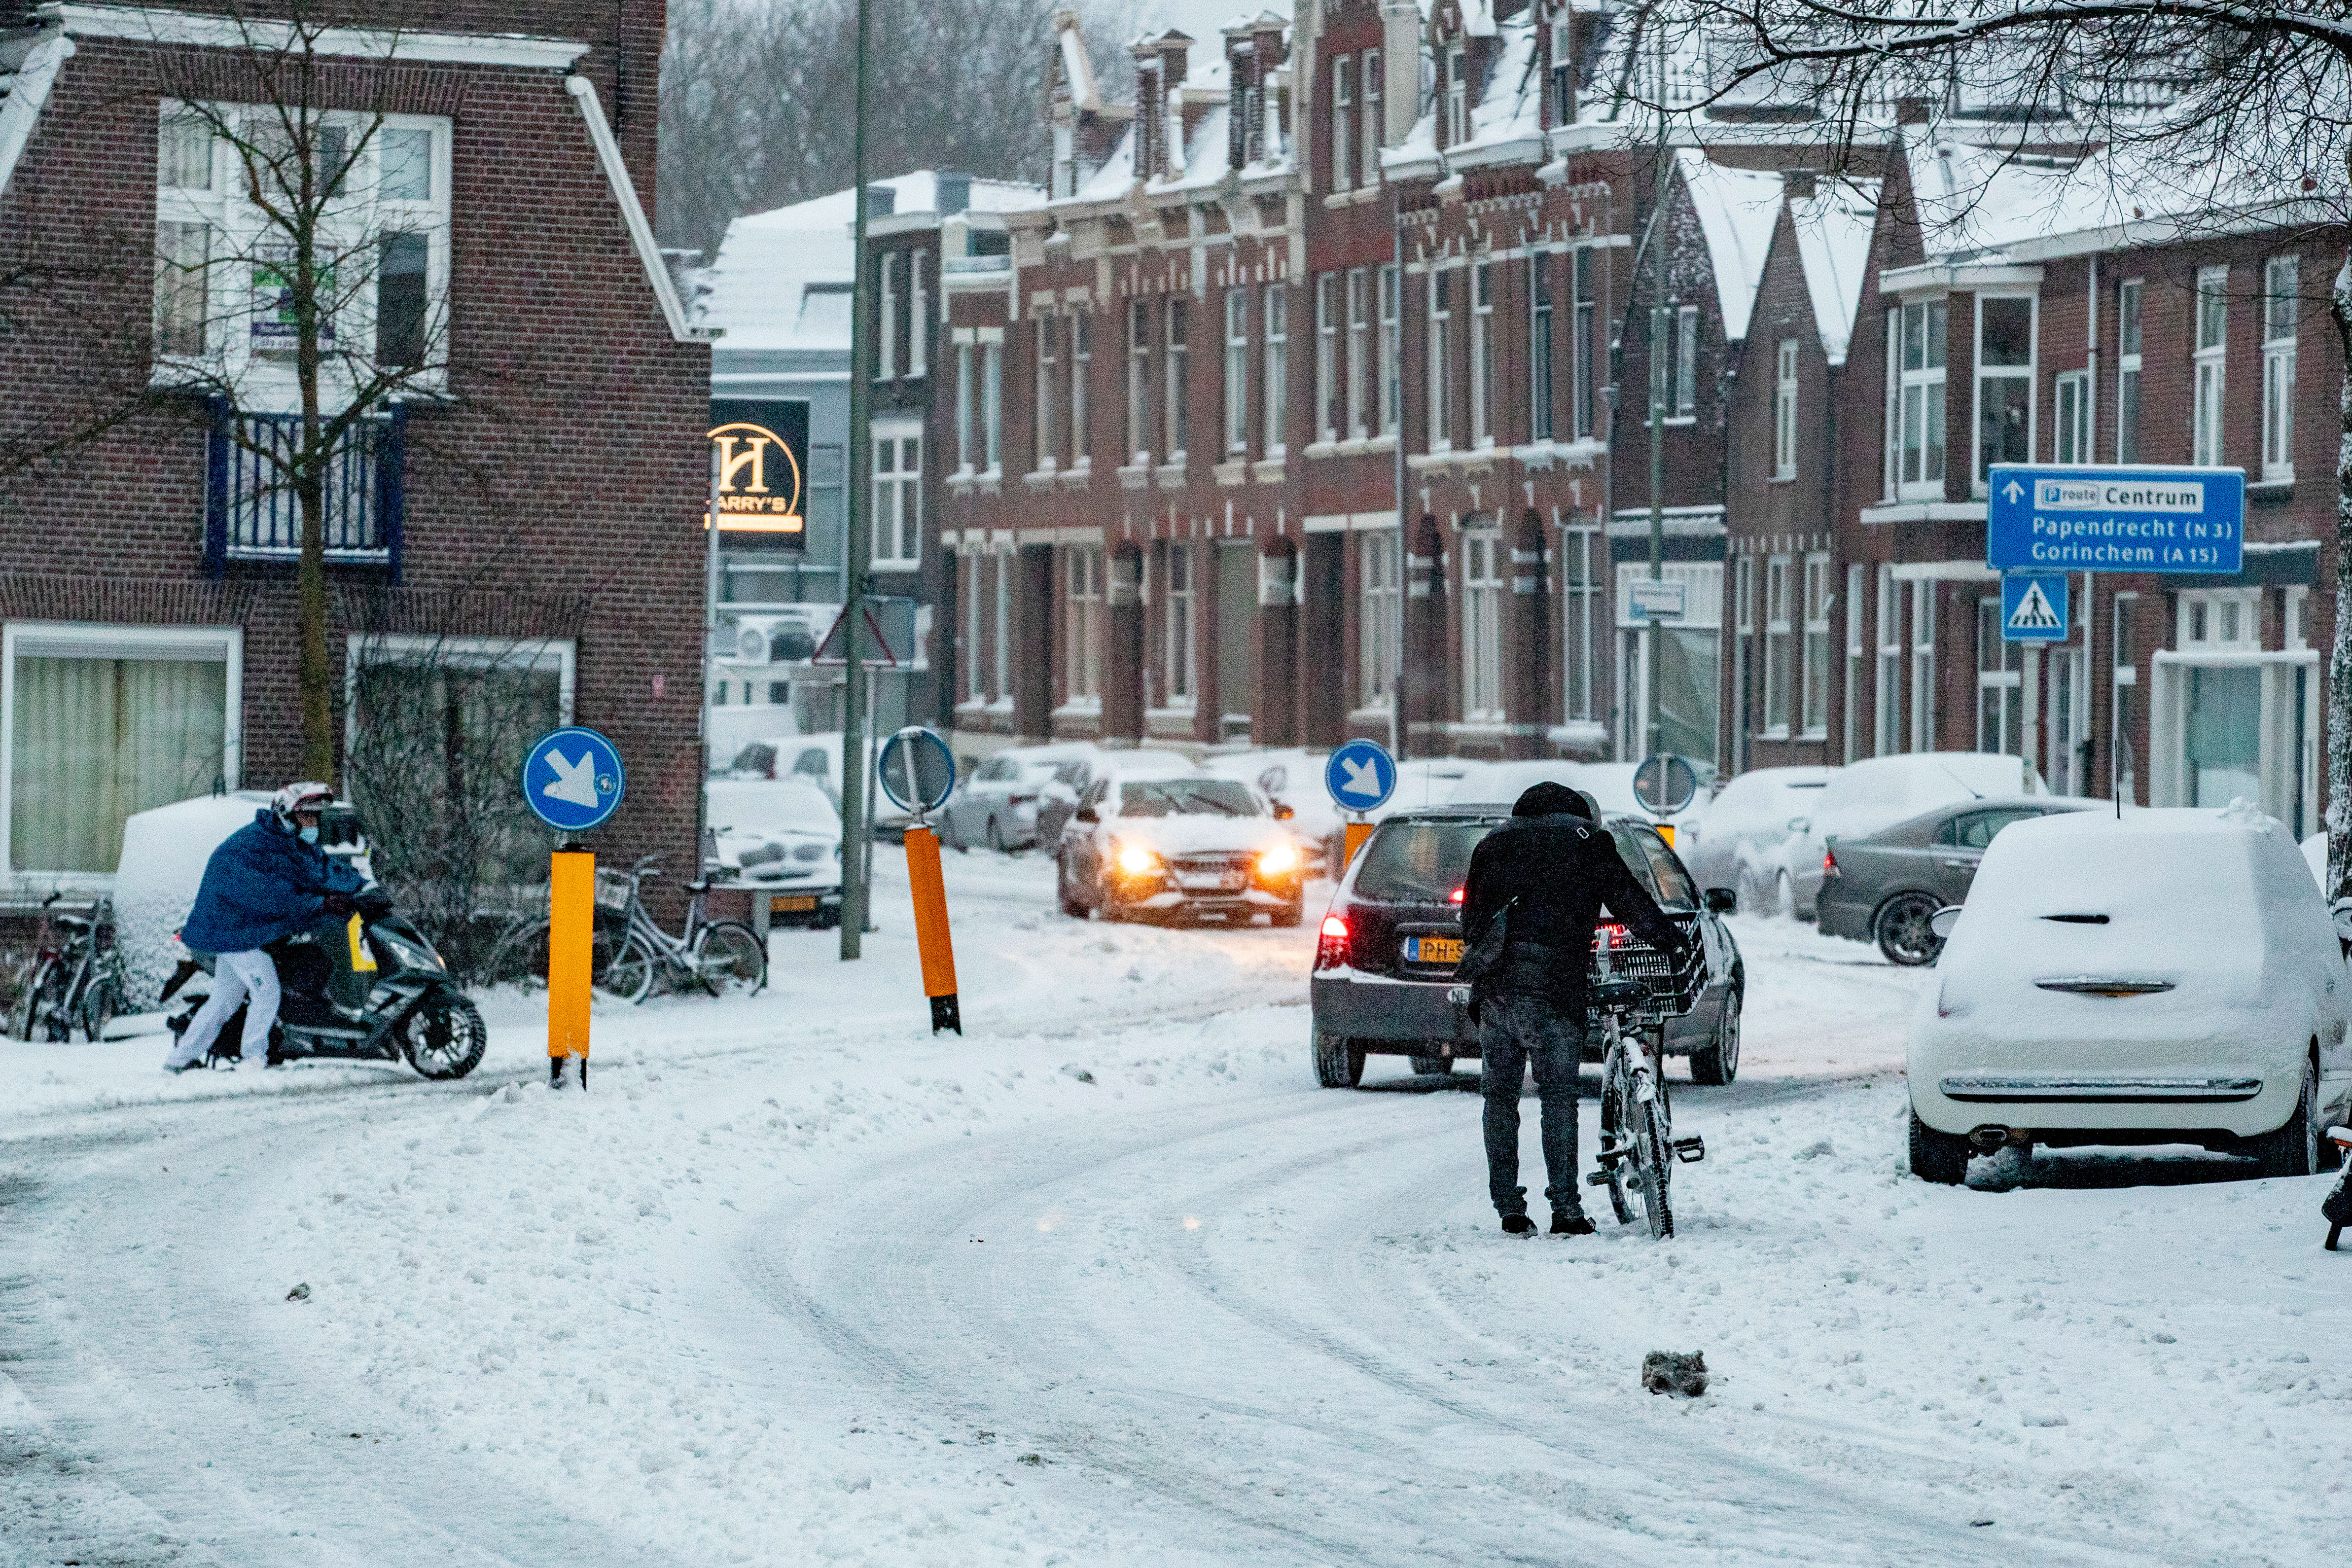 People travel in the snow on February 7 in Dordrecht, Netherlands.